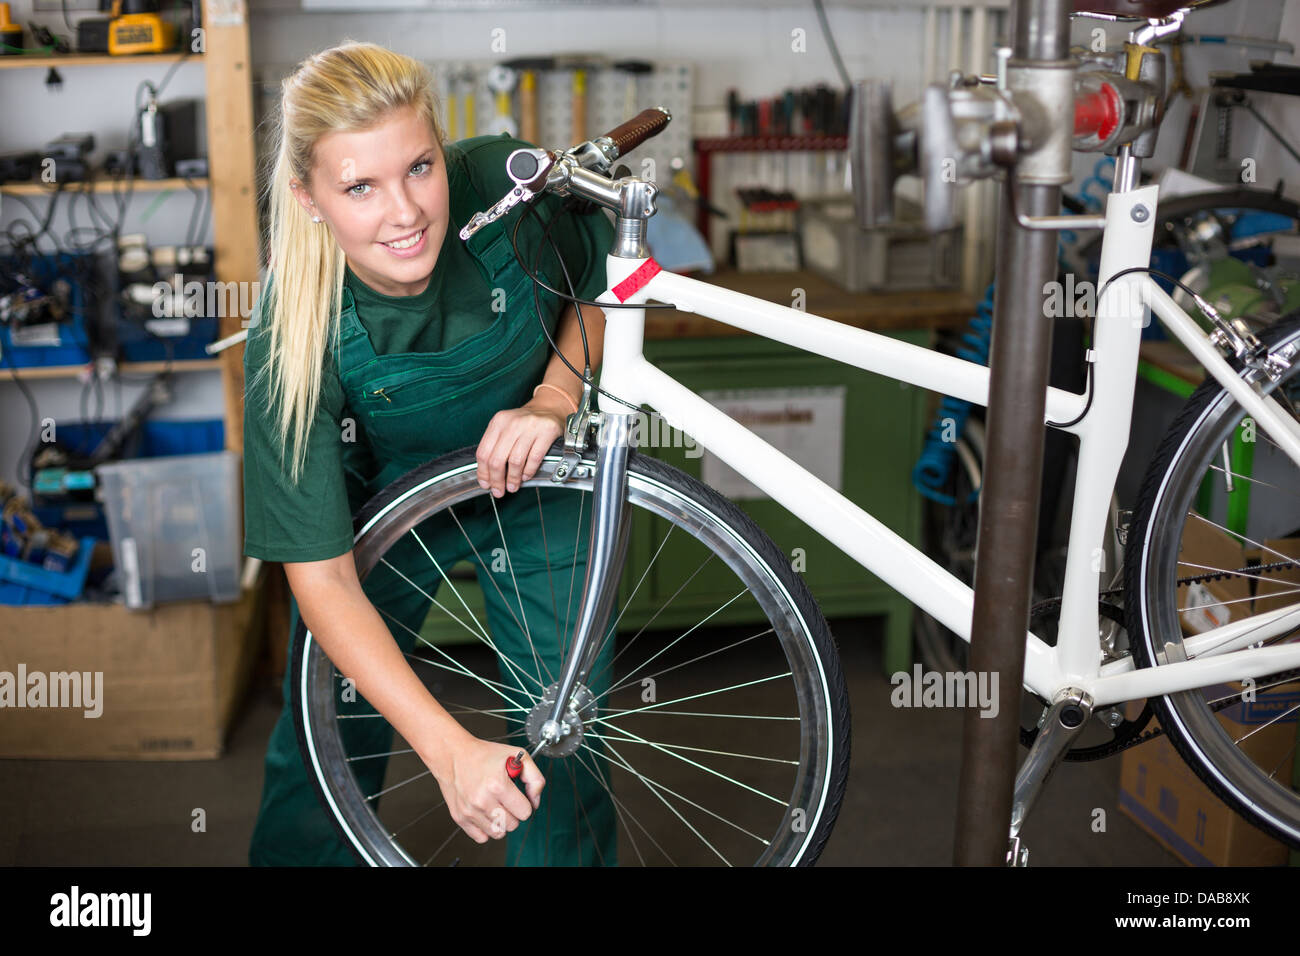 Bicycle mechanic repairing tyre or wheel on bike in a workshop - Stock Image